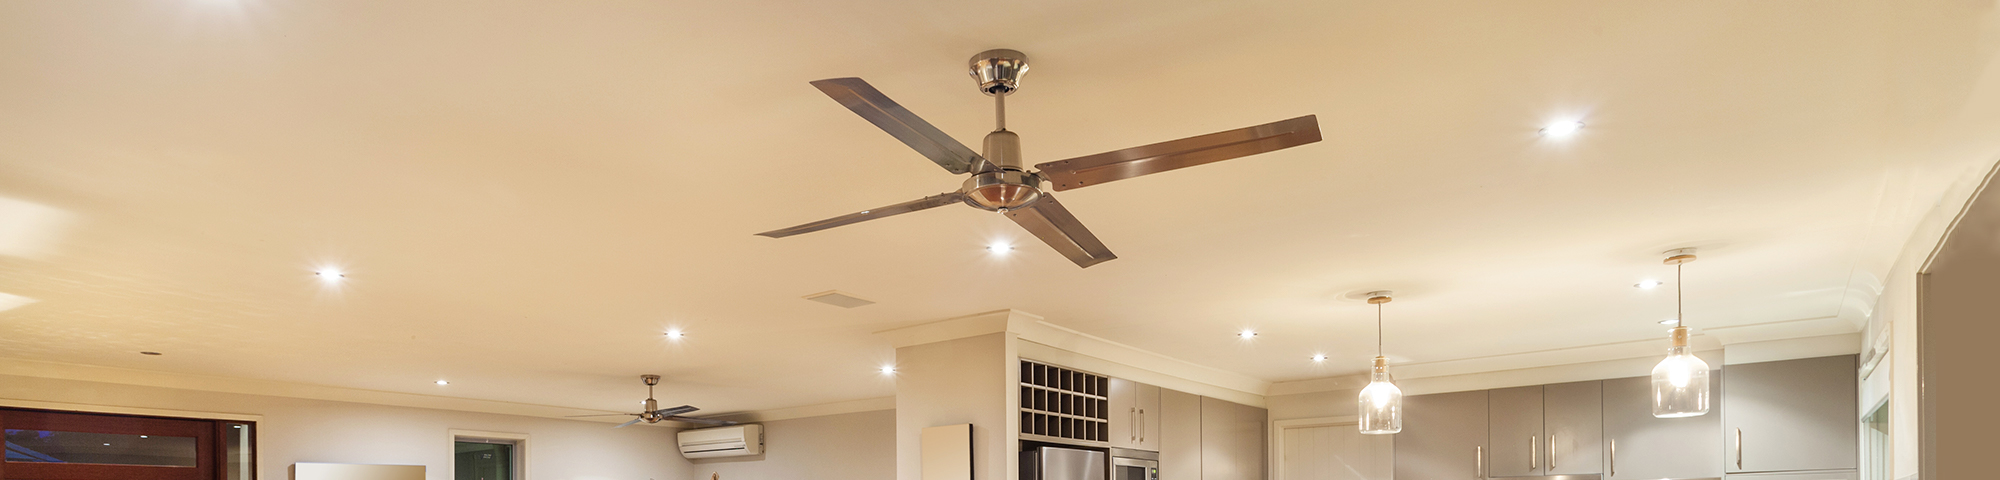 Small Ceiling Fans For Sale Best Ceiling Fans 2019 Reviews Of Indoor Fans And Brands Top